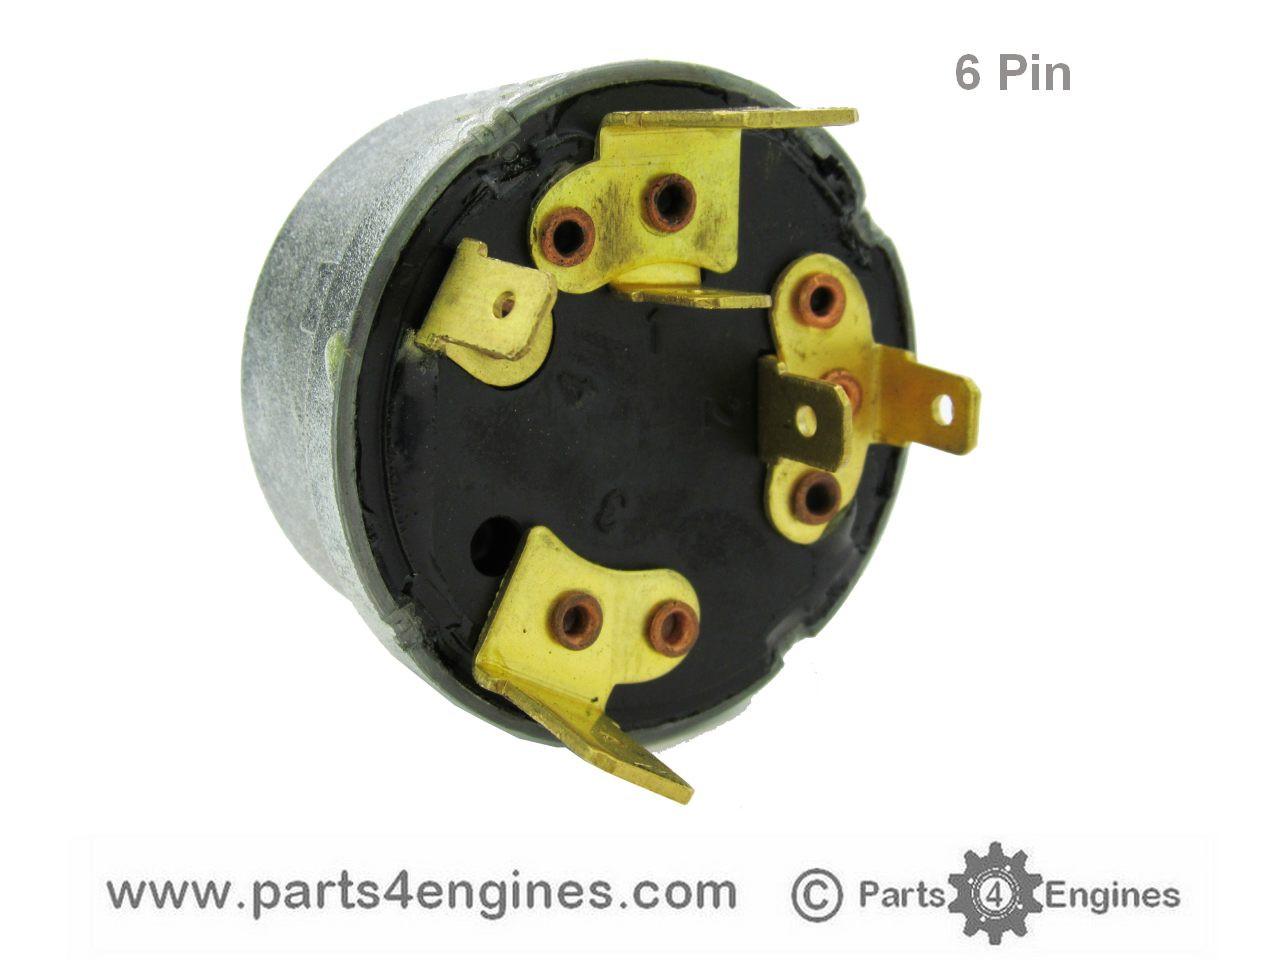 6 pin switch - Perkins 4.248 ignition switch from parts4engines.com